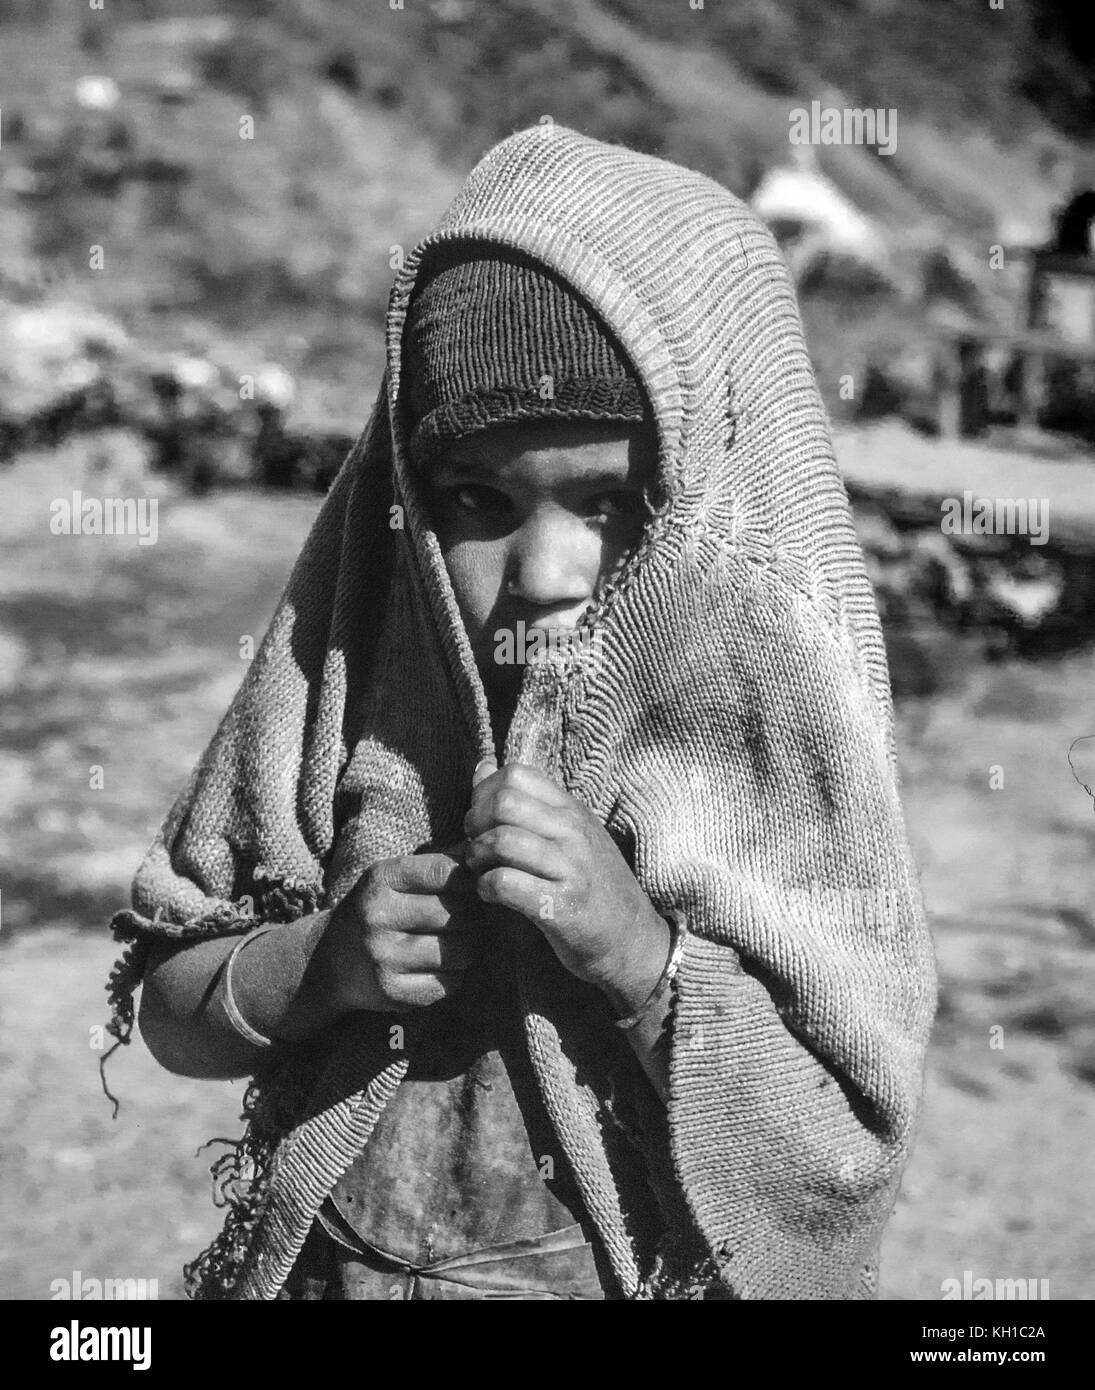 Nepali Child Covering Her Head - Black and White - Stock Image